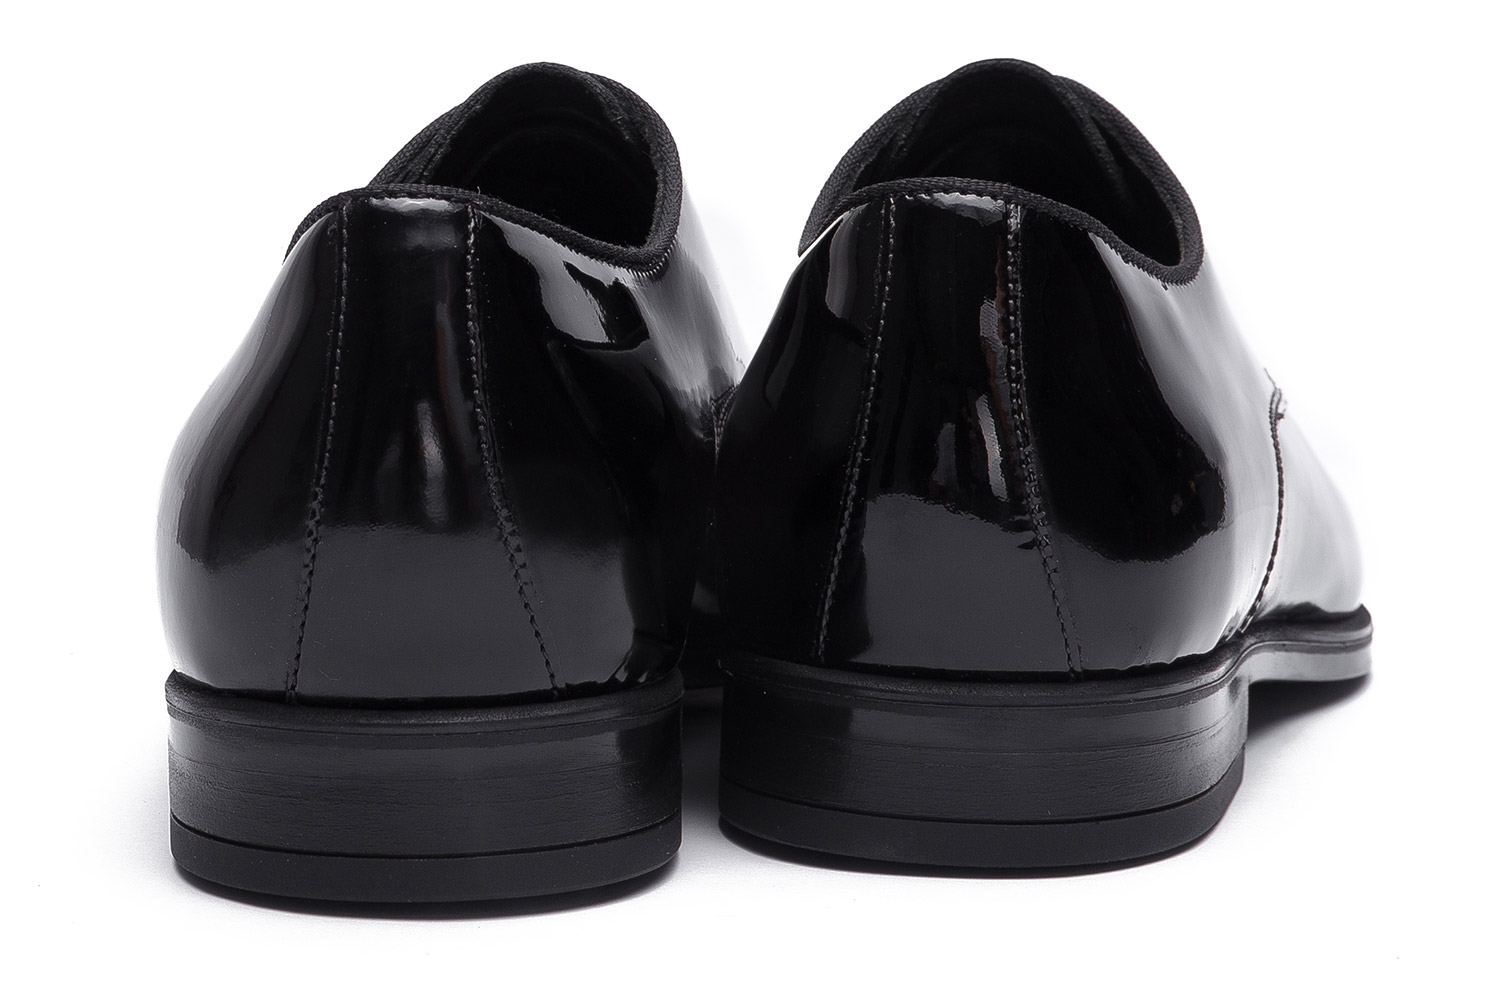 Black Genuine leather Shoes 2